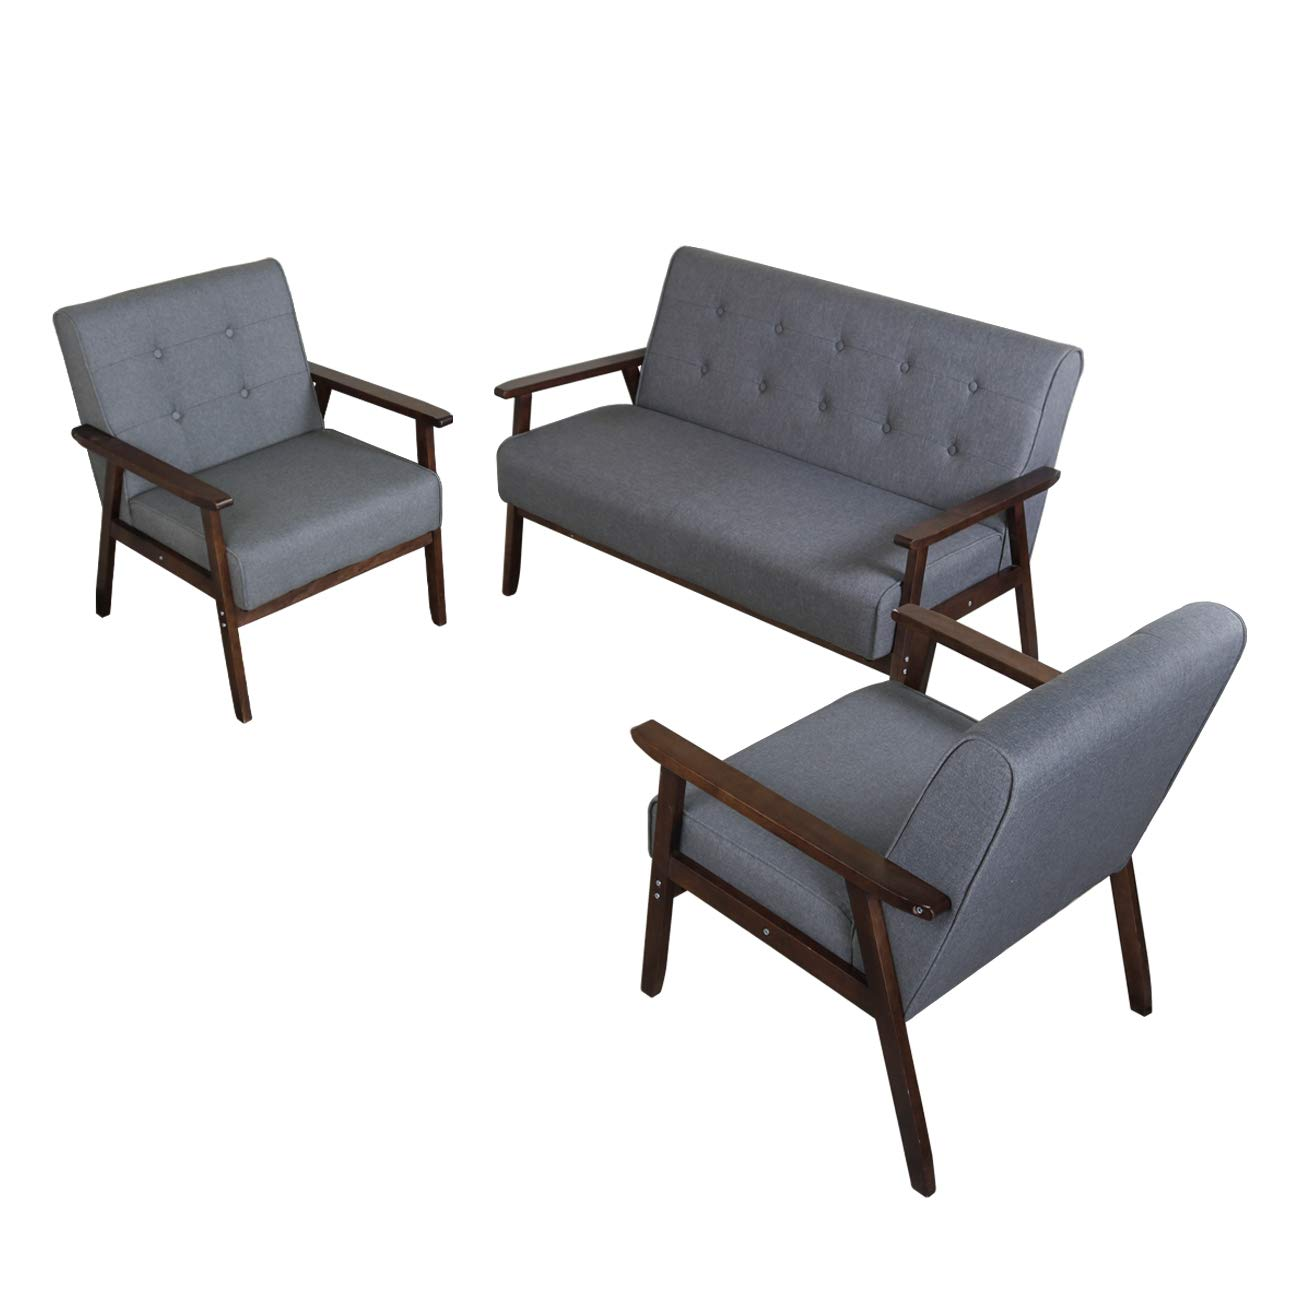 JIASTING Mid Century 1 Loveseat Sofa and 2 Accent Chairs Set Modern Wood Arm Couch and Chair Living Room Furniture Sets (8428 Grey Set) by JIASTING